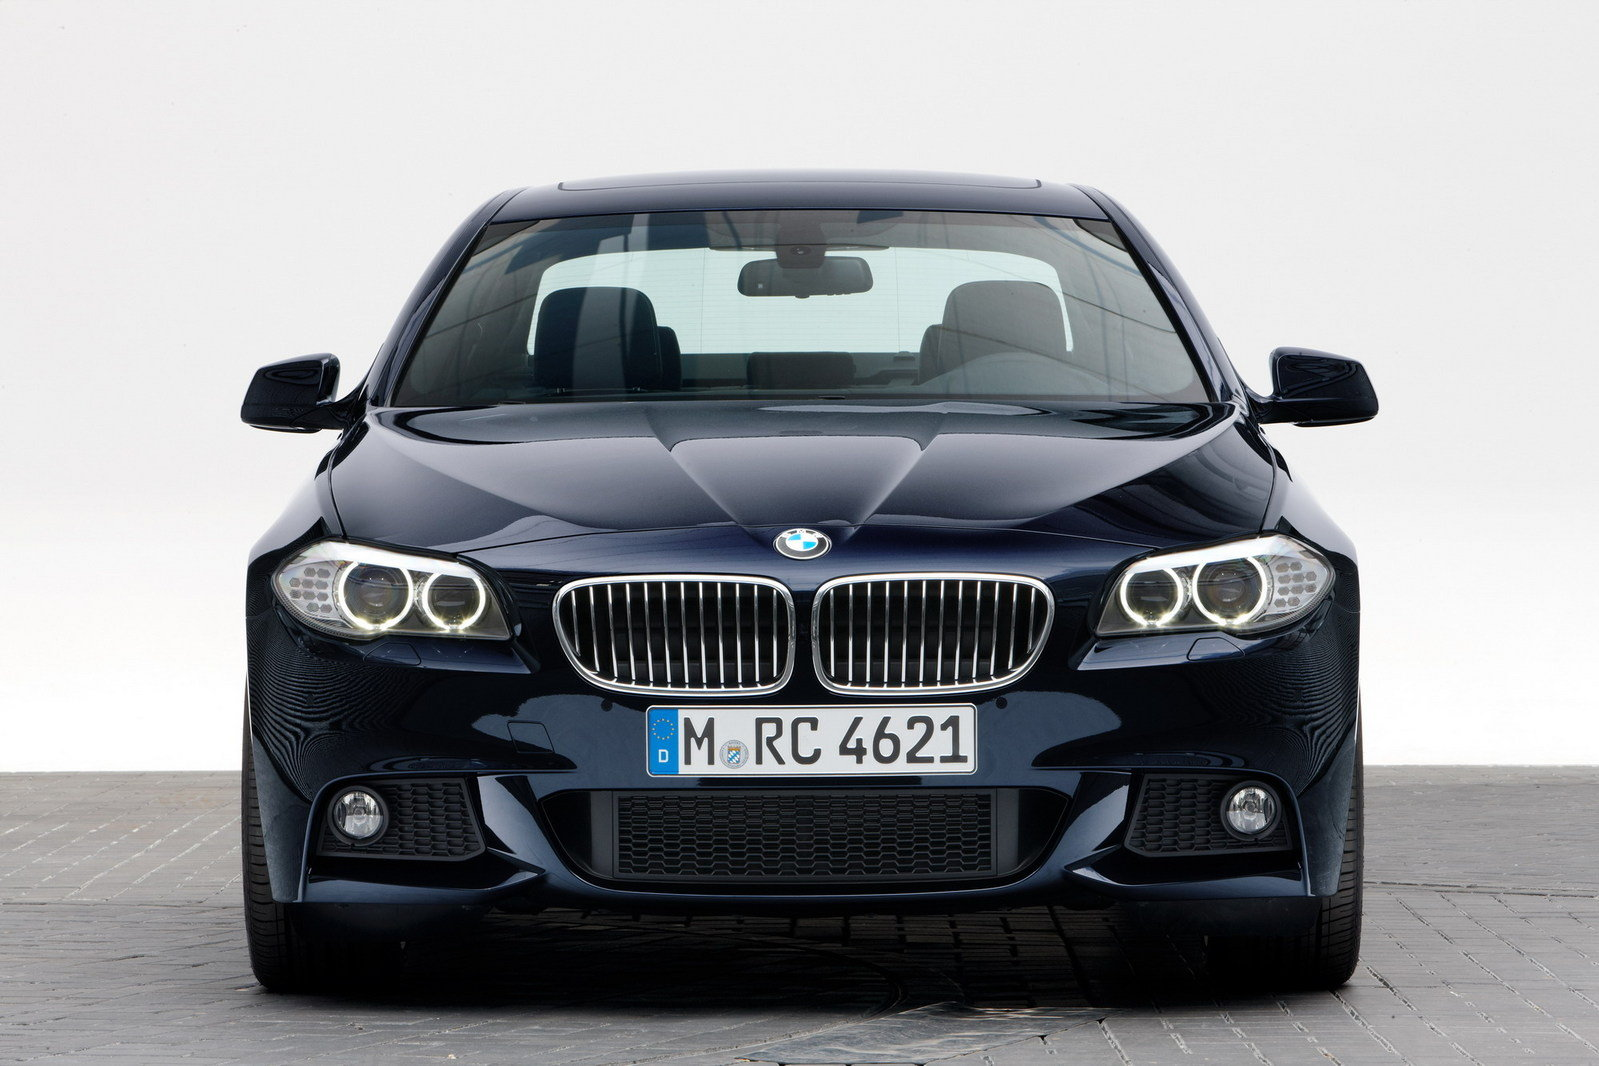 2011 bmw 5 series sedan m sport package picture 367762 car review top speed. Black Bedroom Furniture Sets. Home Design Ideas